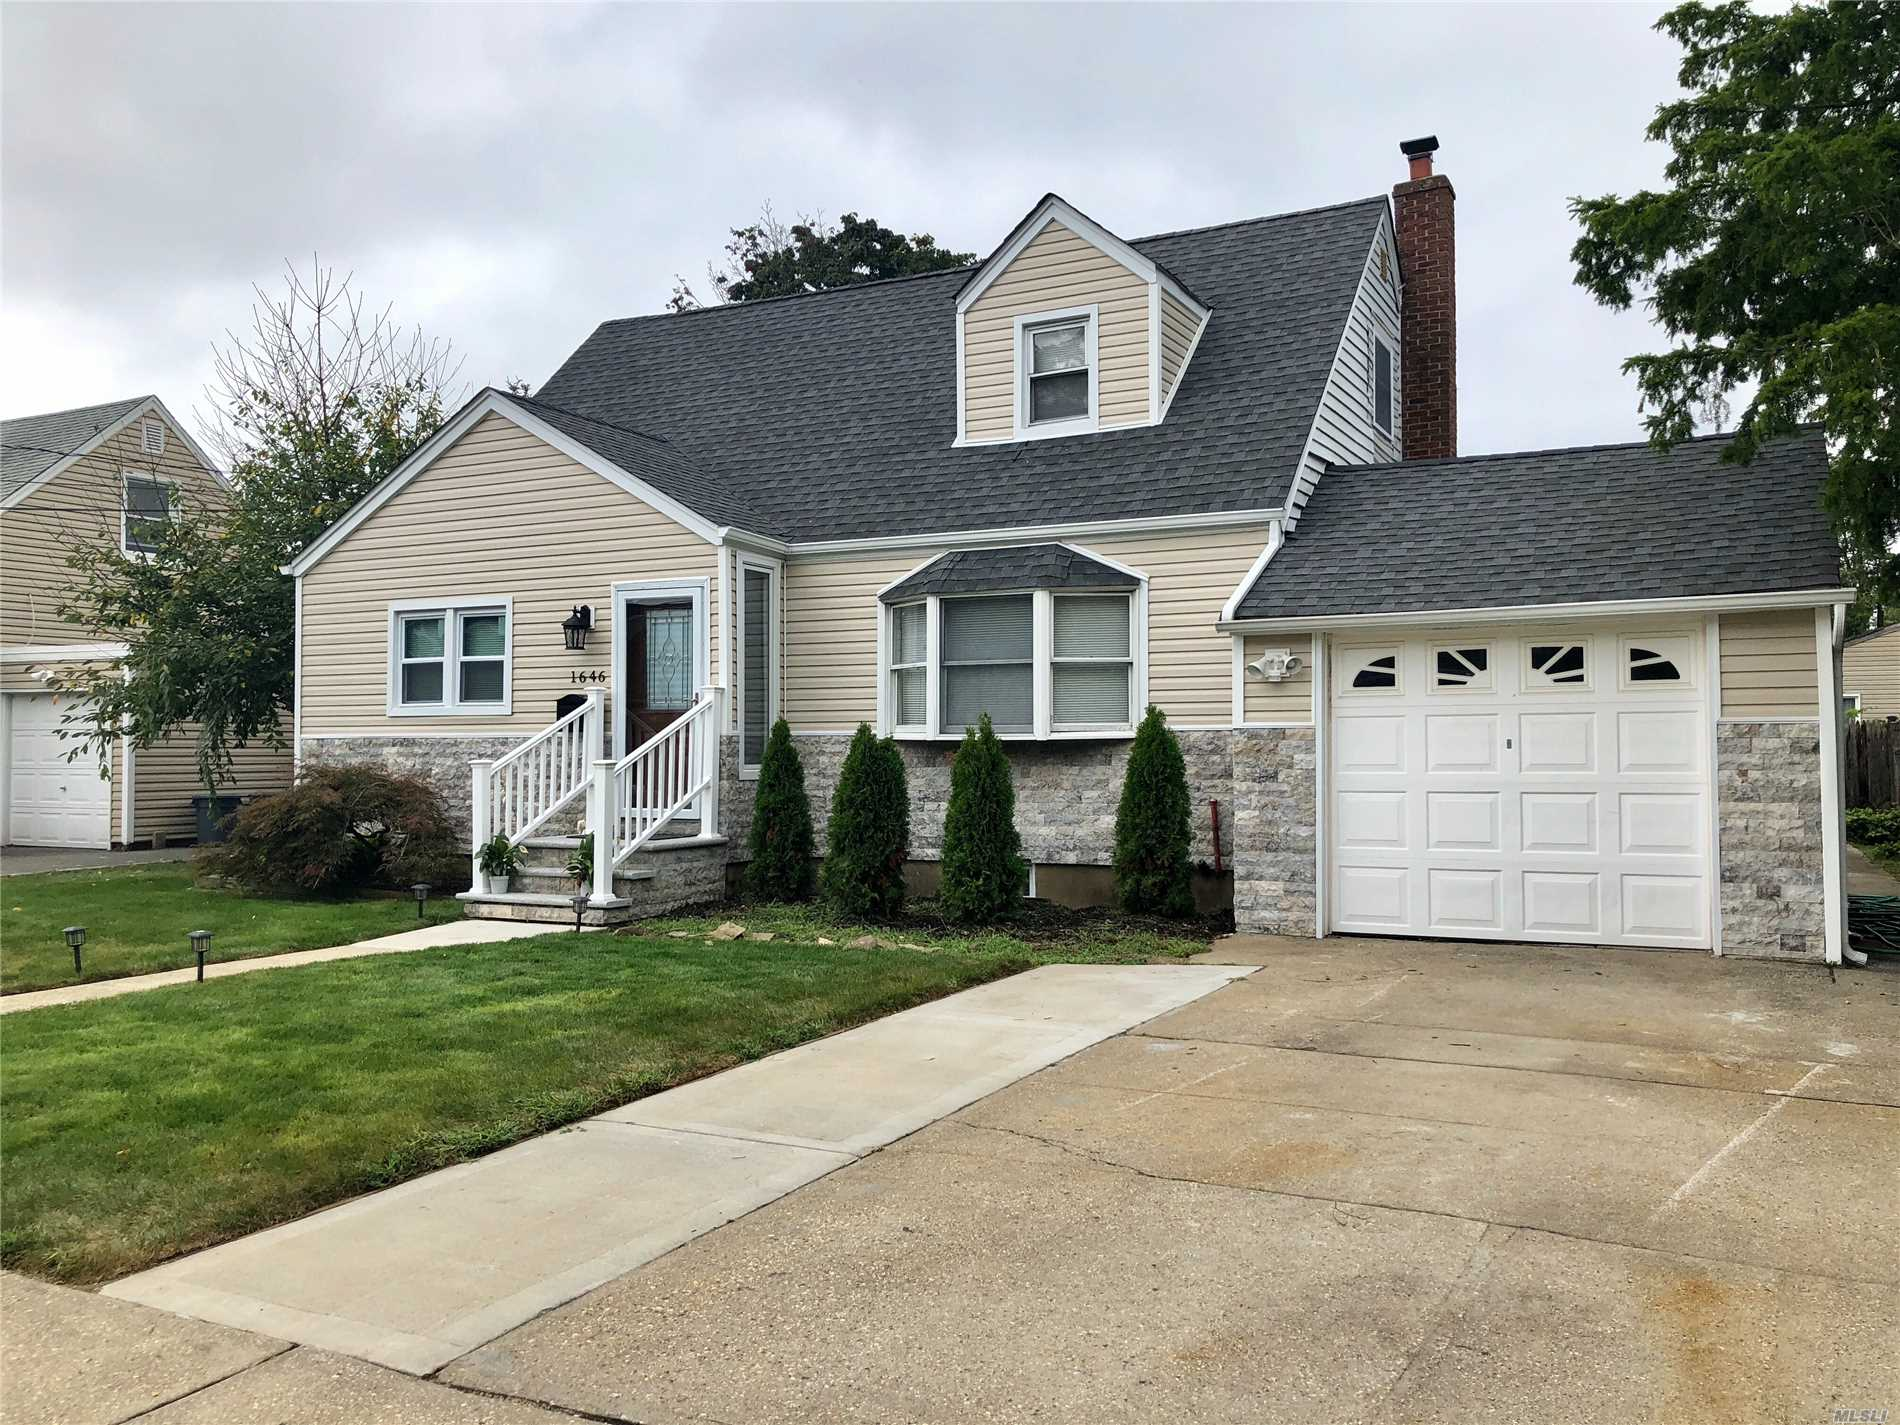 Fully Remodeled Cape Features 4 Bedrooms, Master Suite/Jacuzzi/Shower And Wic, 3 New Bths, New Large Eik, Full Finished Basement, Mint Extended Cape.